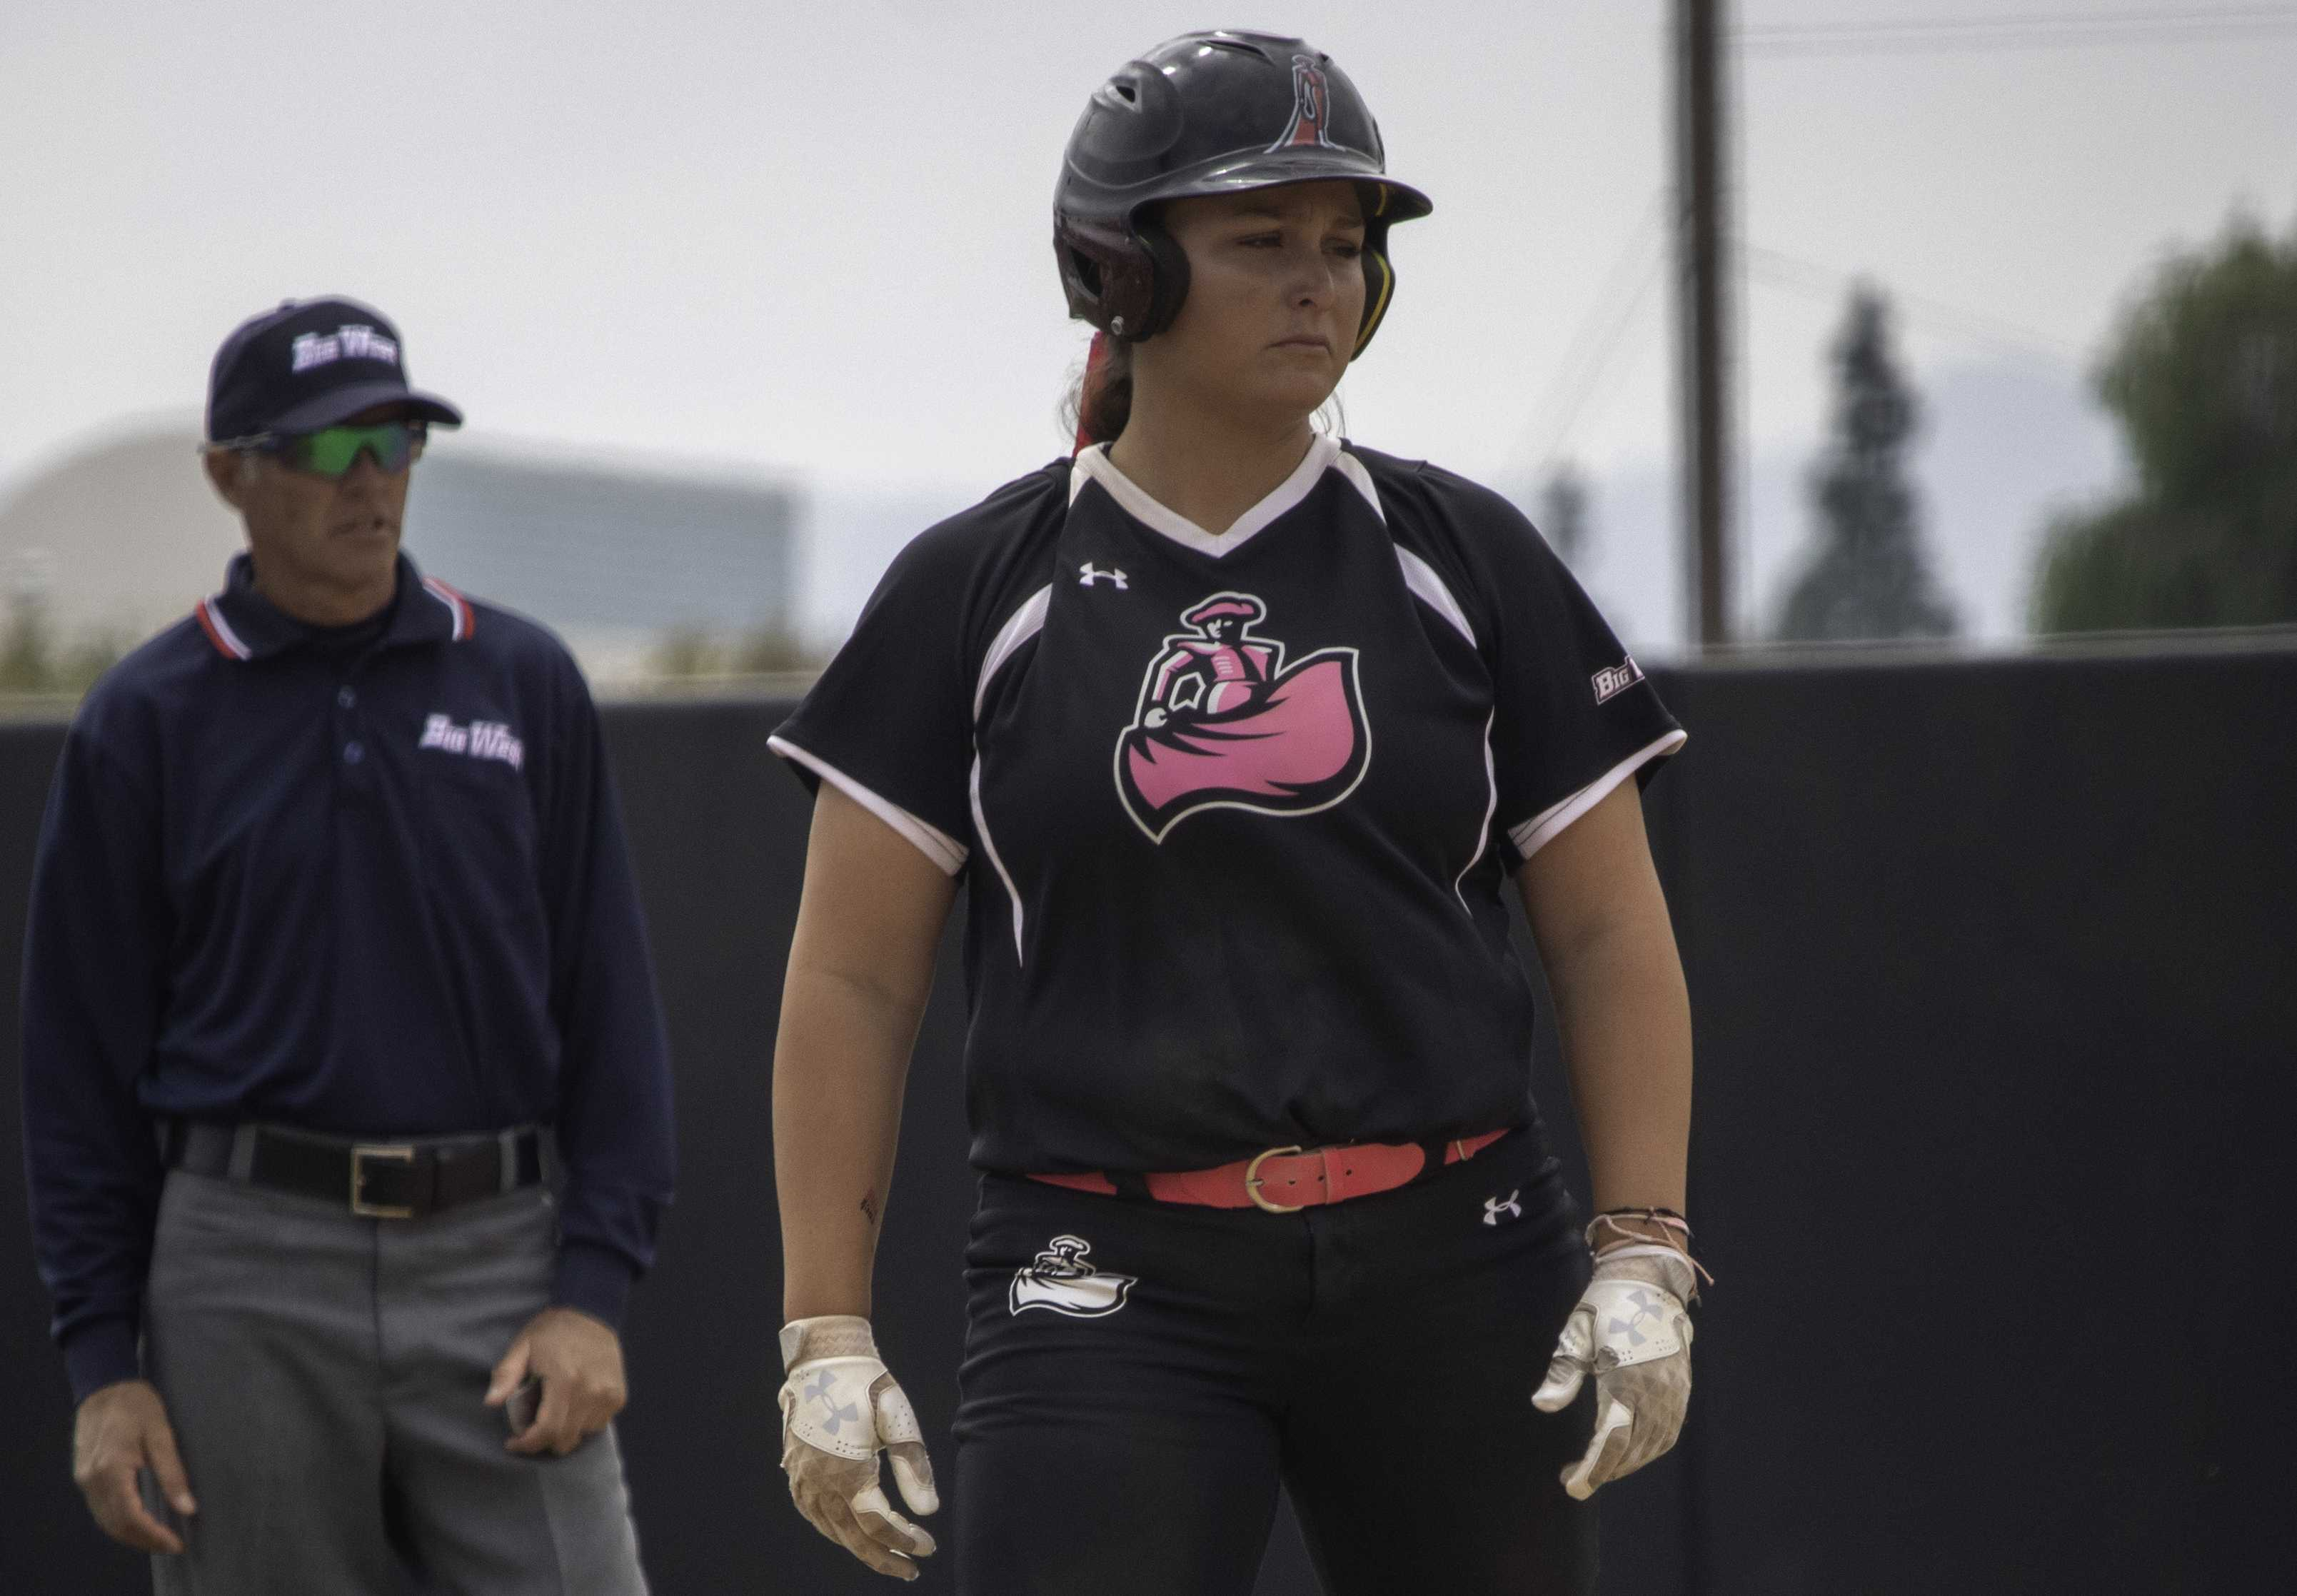 Junior Megan Stevens stands at third base during the Matadors' 5-3 win over Cal Poly at Matador Diamond on April 20. Stevens broke the record for doubles in a season by a CSUN player with her 18th in her team's 10-2 victory over UC Santa Barbara on April 27. Photo credit: Tyler Wainfeld